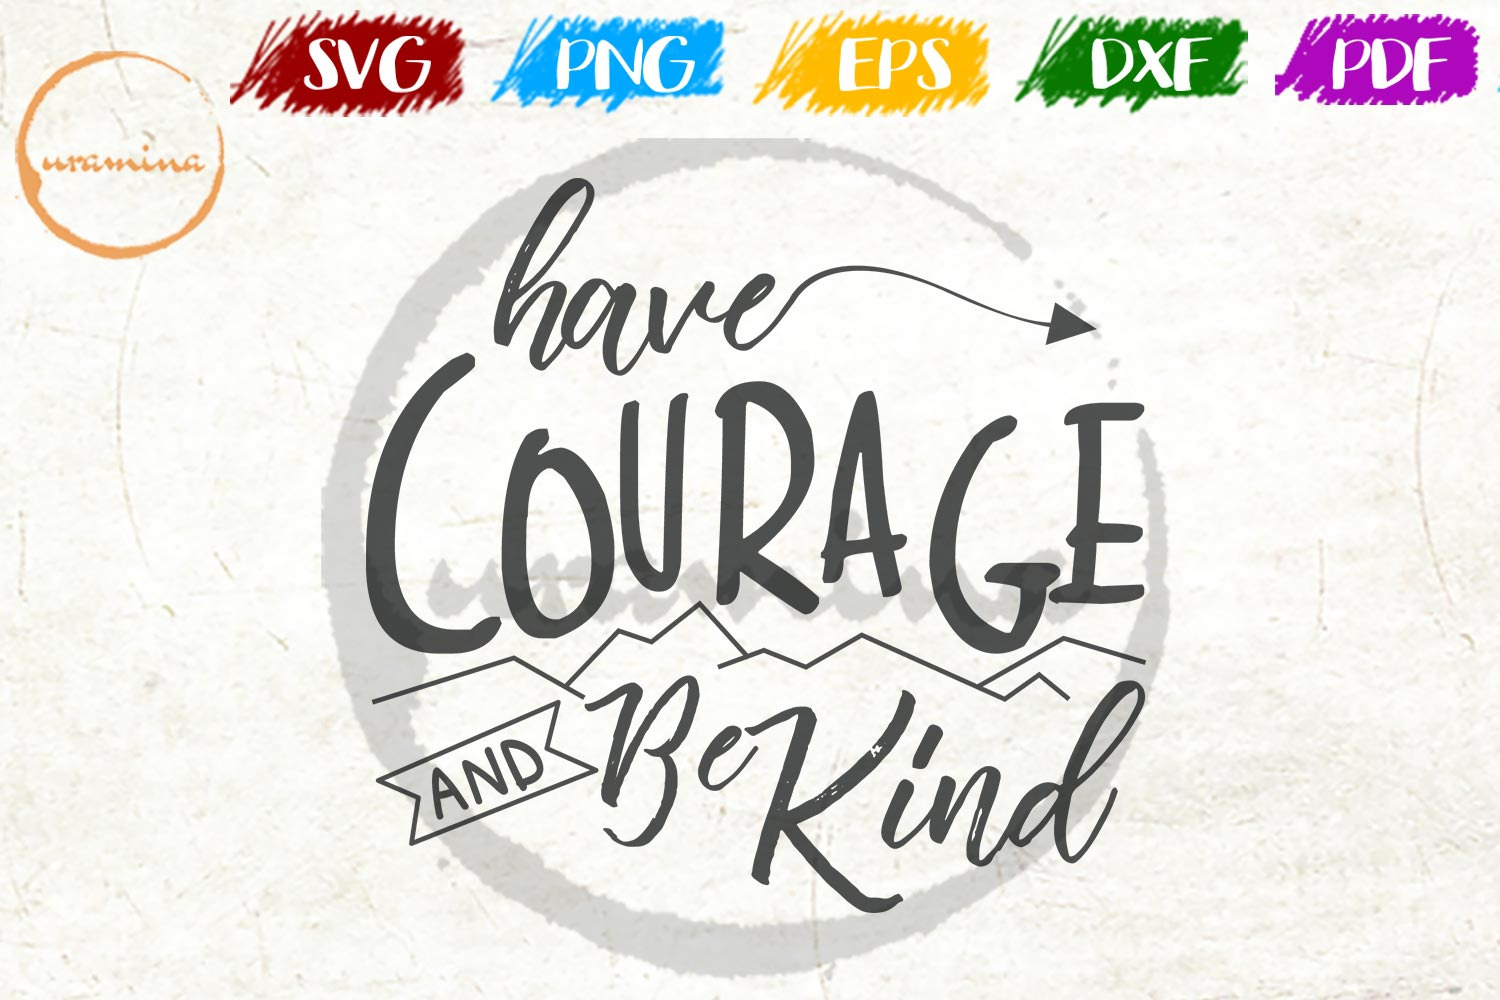 Download Free Have Courage And Be Kind Graphic By Uramina Creative Fabrica for Cricut Explore, Silhouette and other cutting machines.